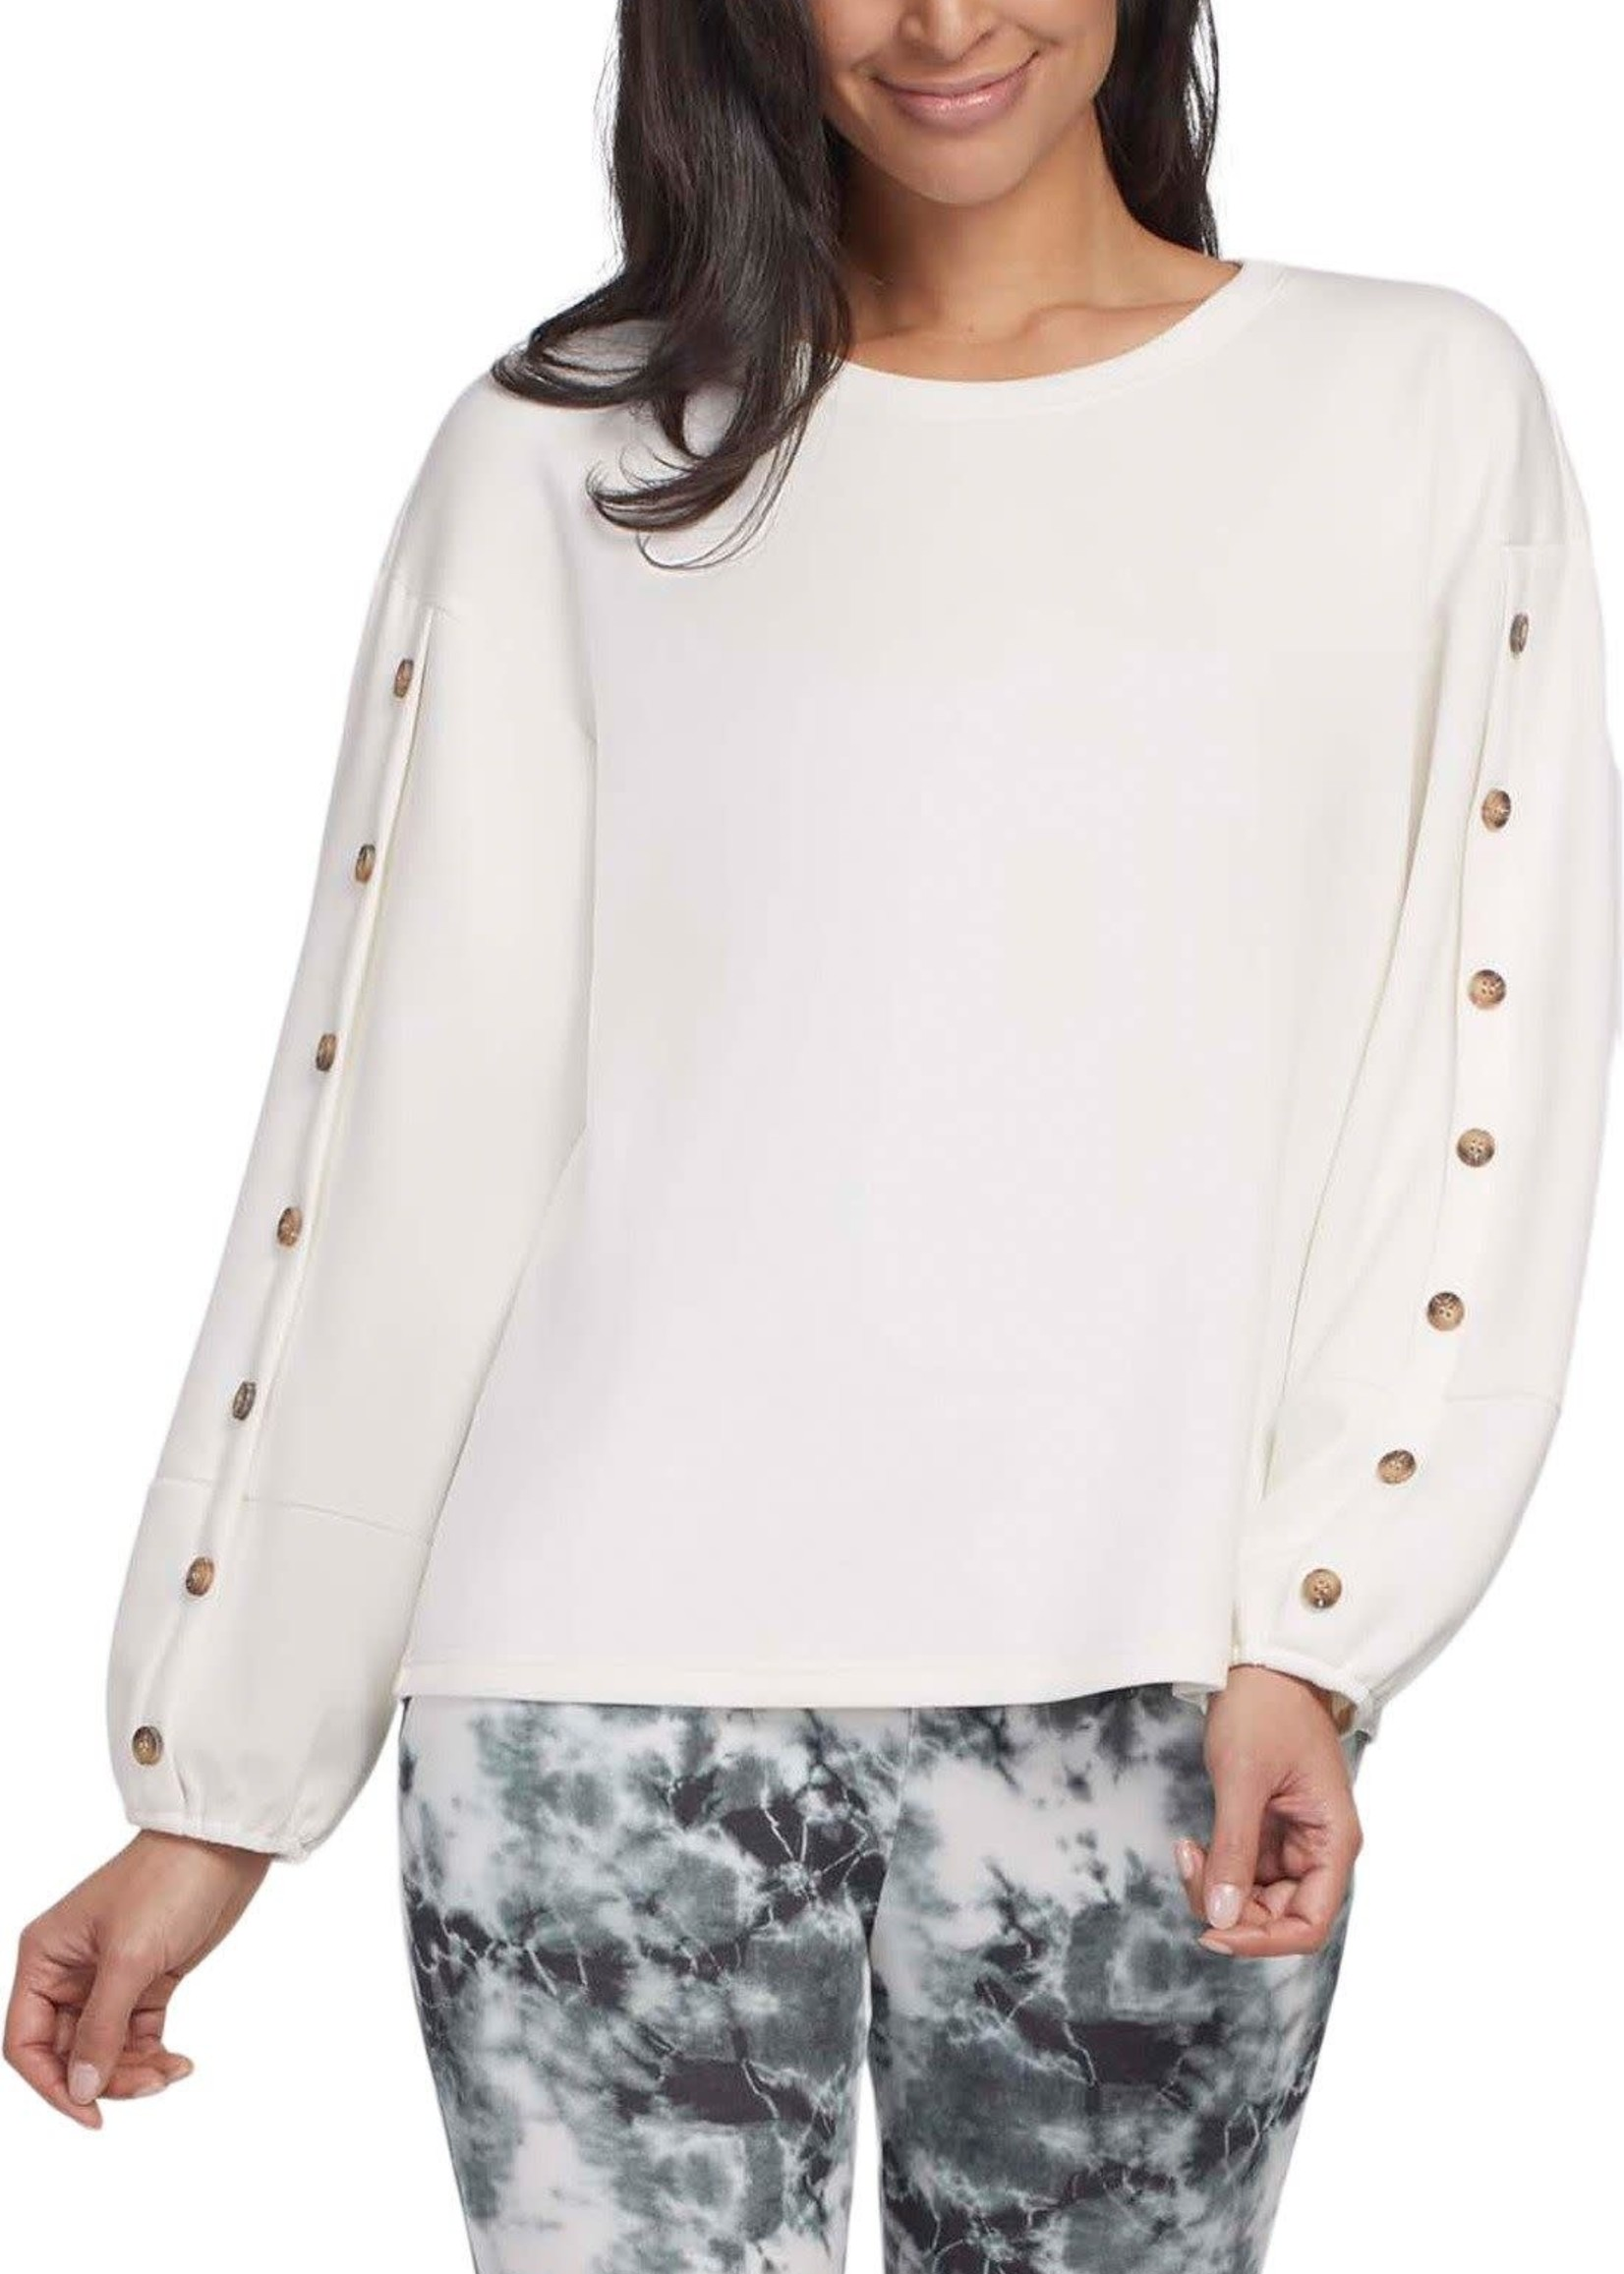 Tribal Tribal Long Sleeve Top w/Buttons